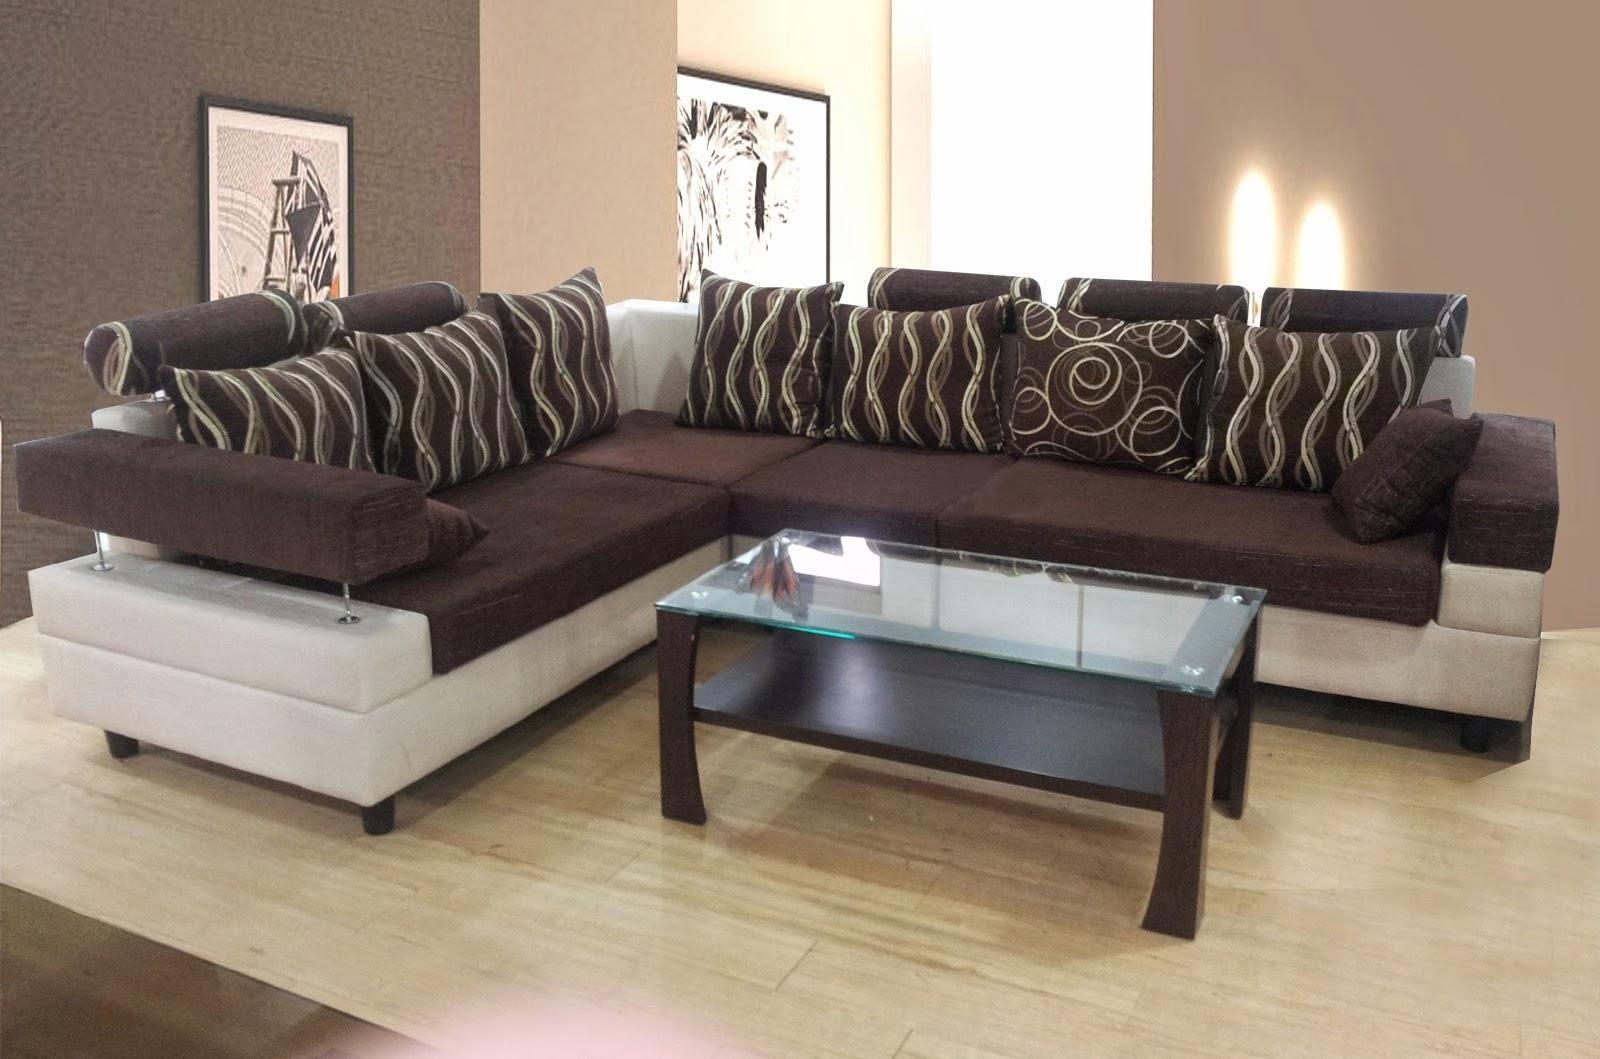 Sofa Set Deals In Kenya | Tehranmix Decoration Within Luxe Sofas (Image 10 of 20)